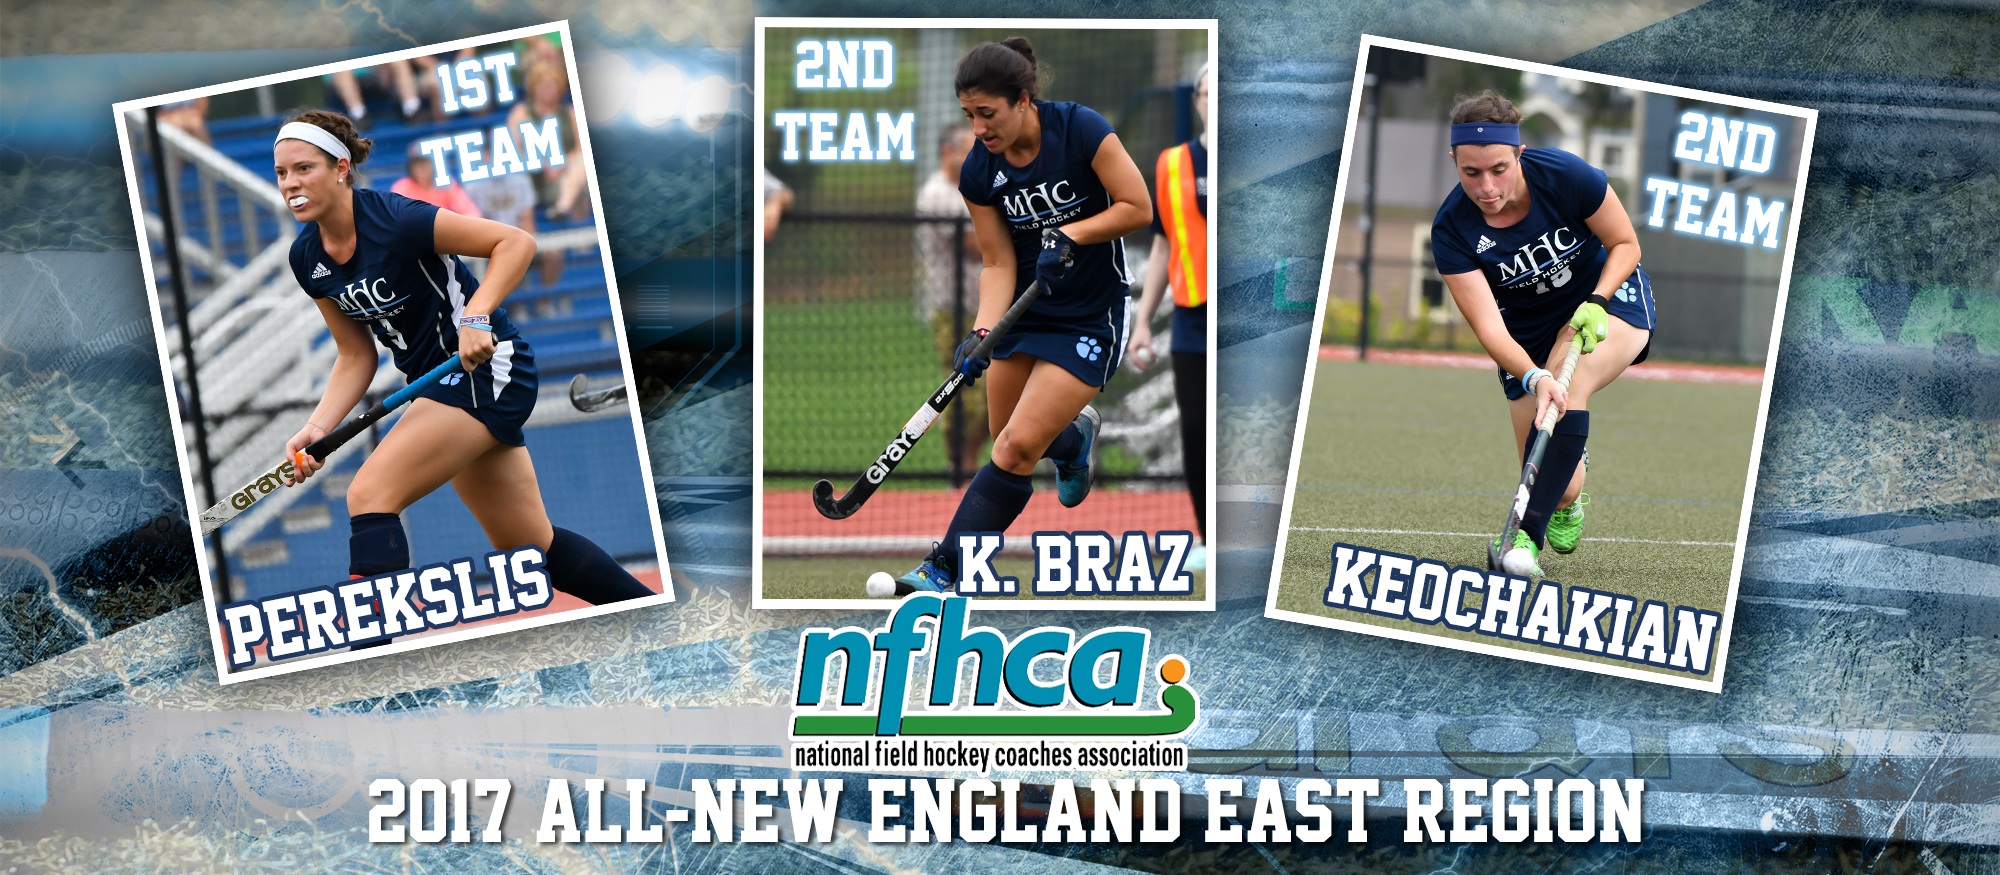 Image depicting action photos of Lyons field hockey players Sophie Perekslis, Kaitlin Braz and Mirjam Keochakian. All three were named to the 2017 NFHCA All-New England East Region Team on Wednesday, November 29.